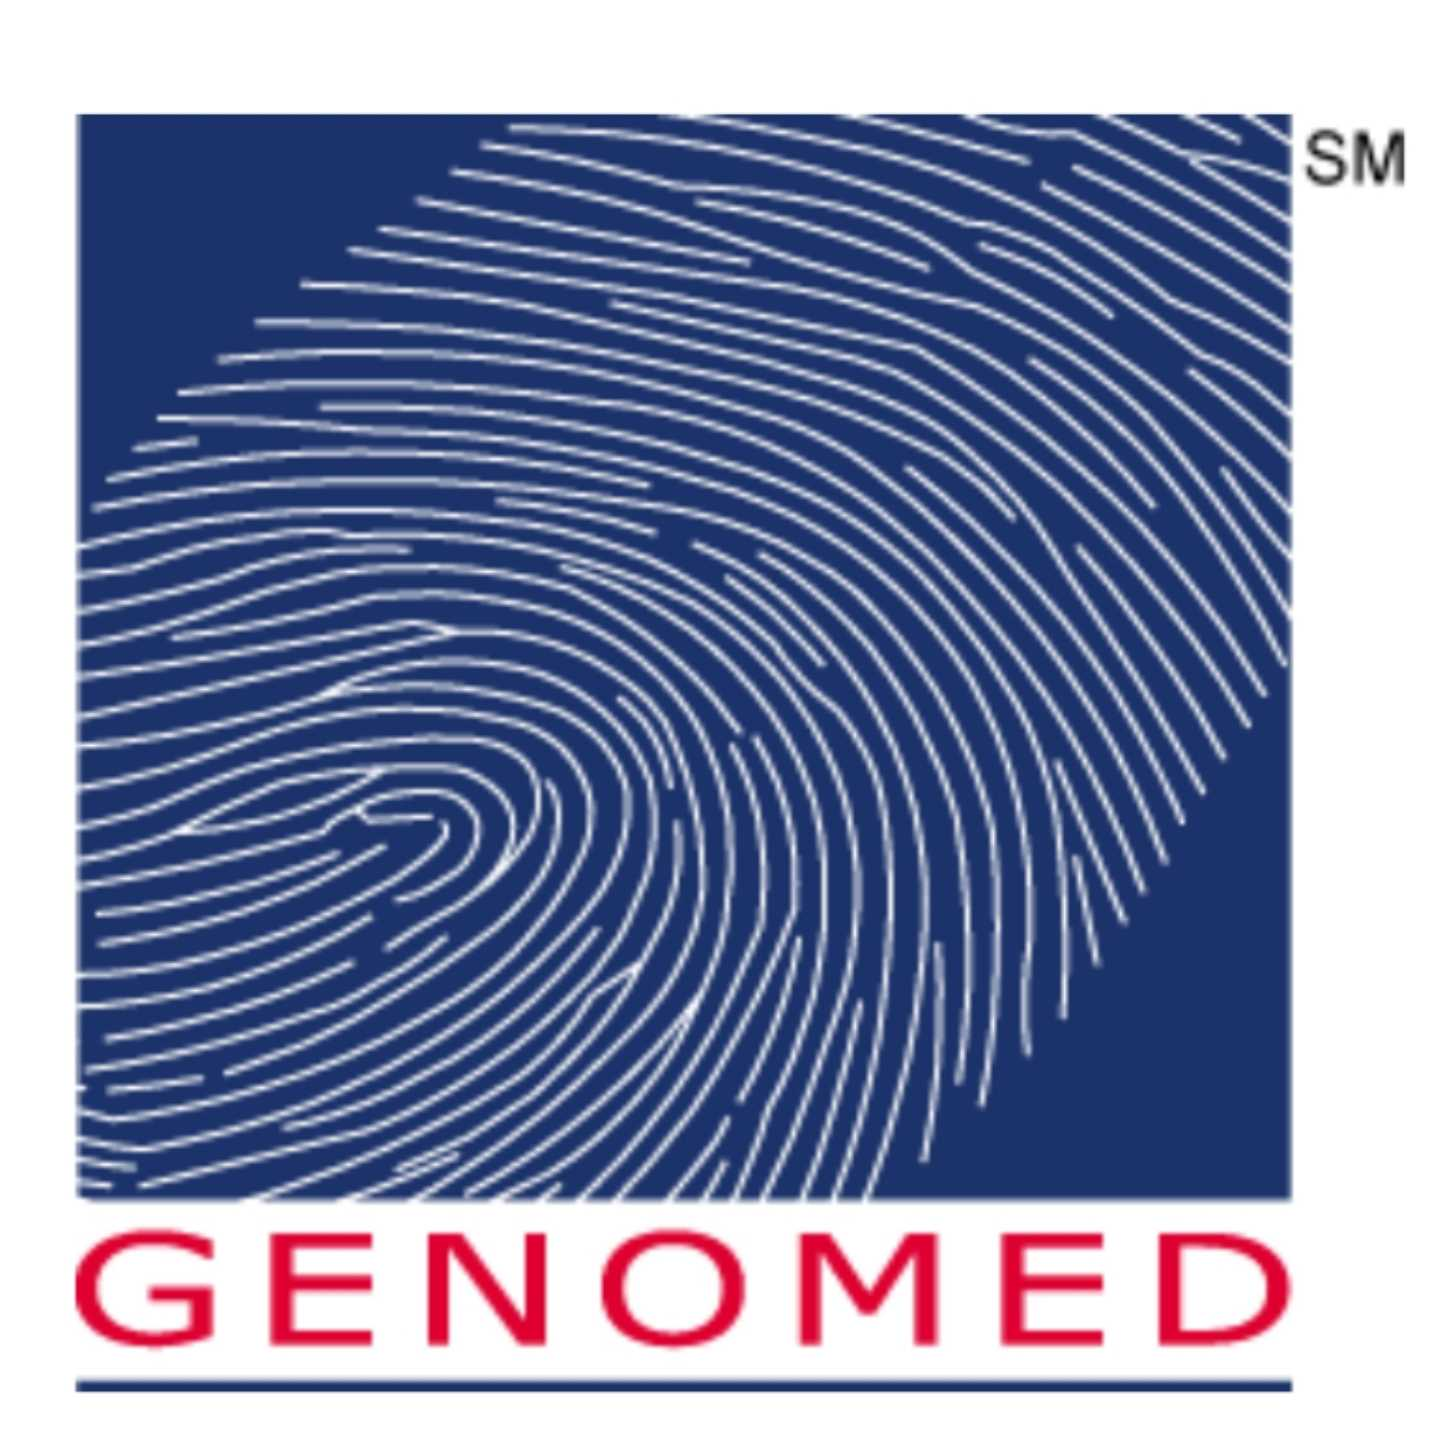 Genomed, 360 MAGAZINE